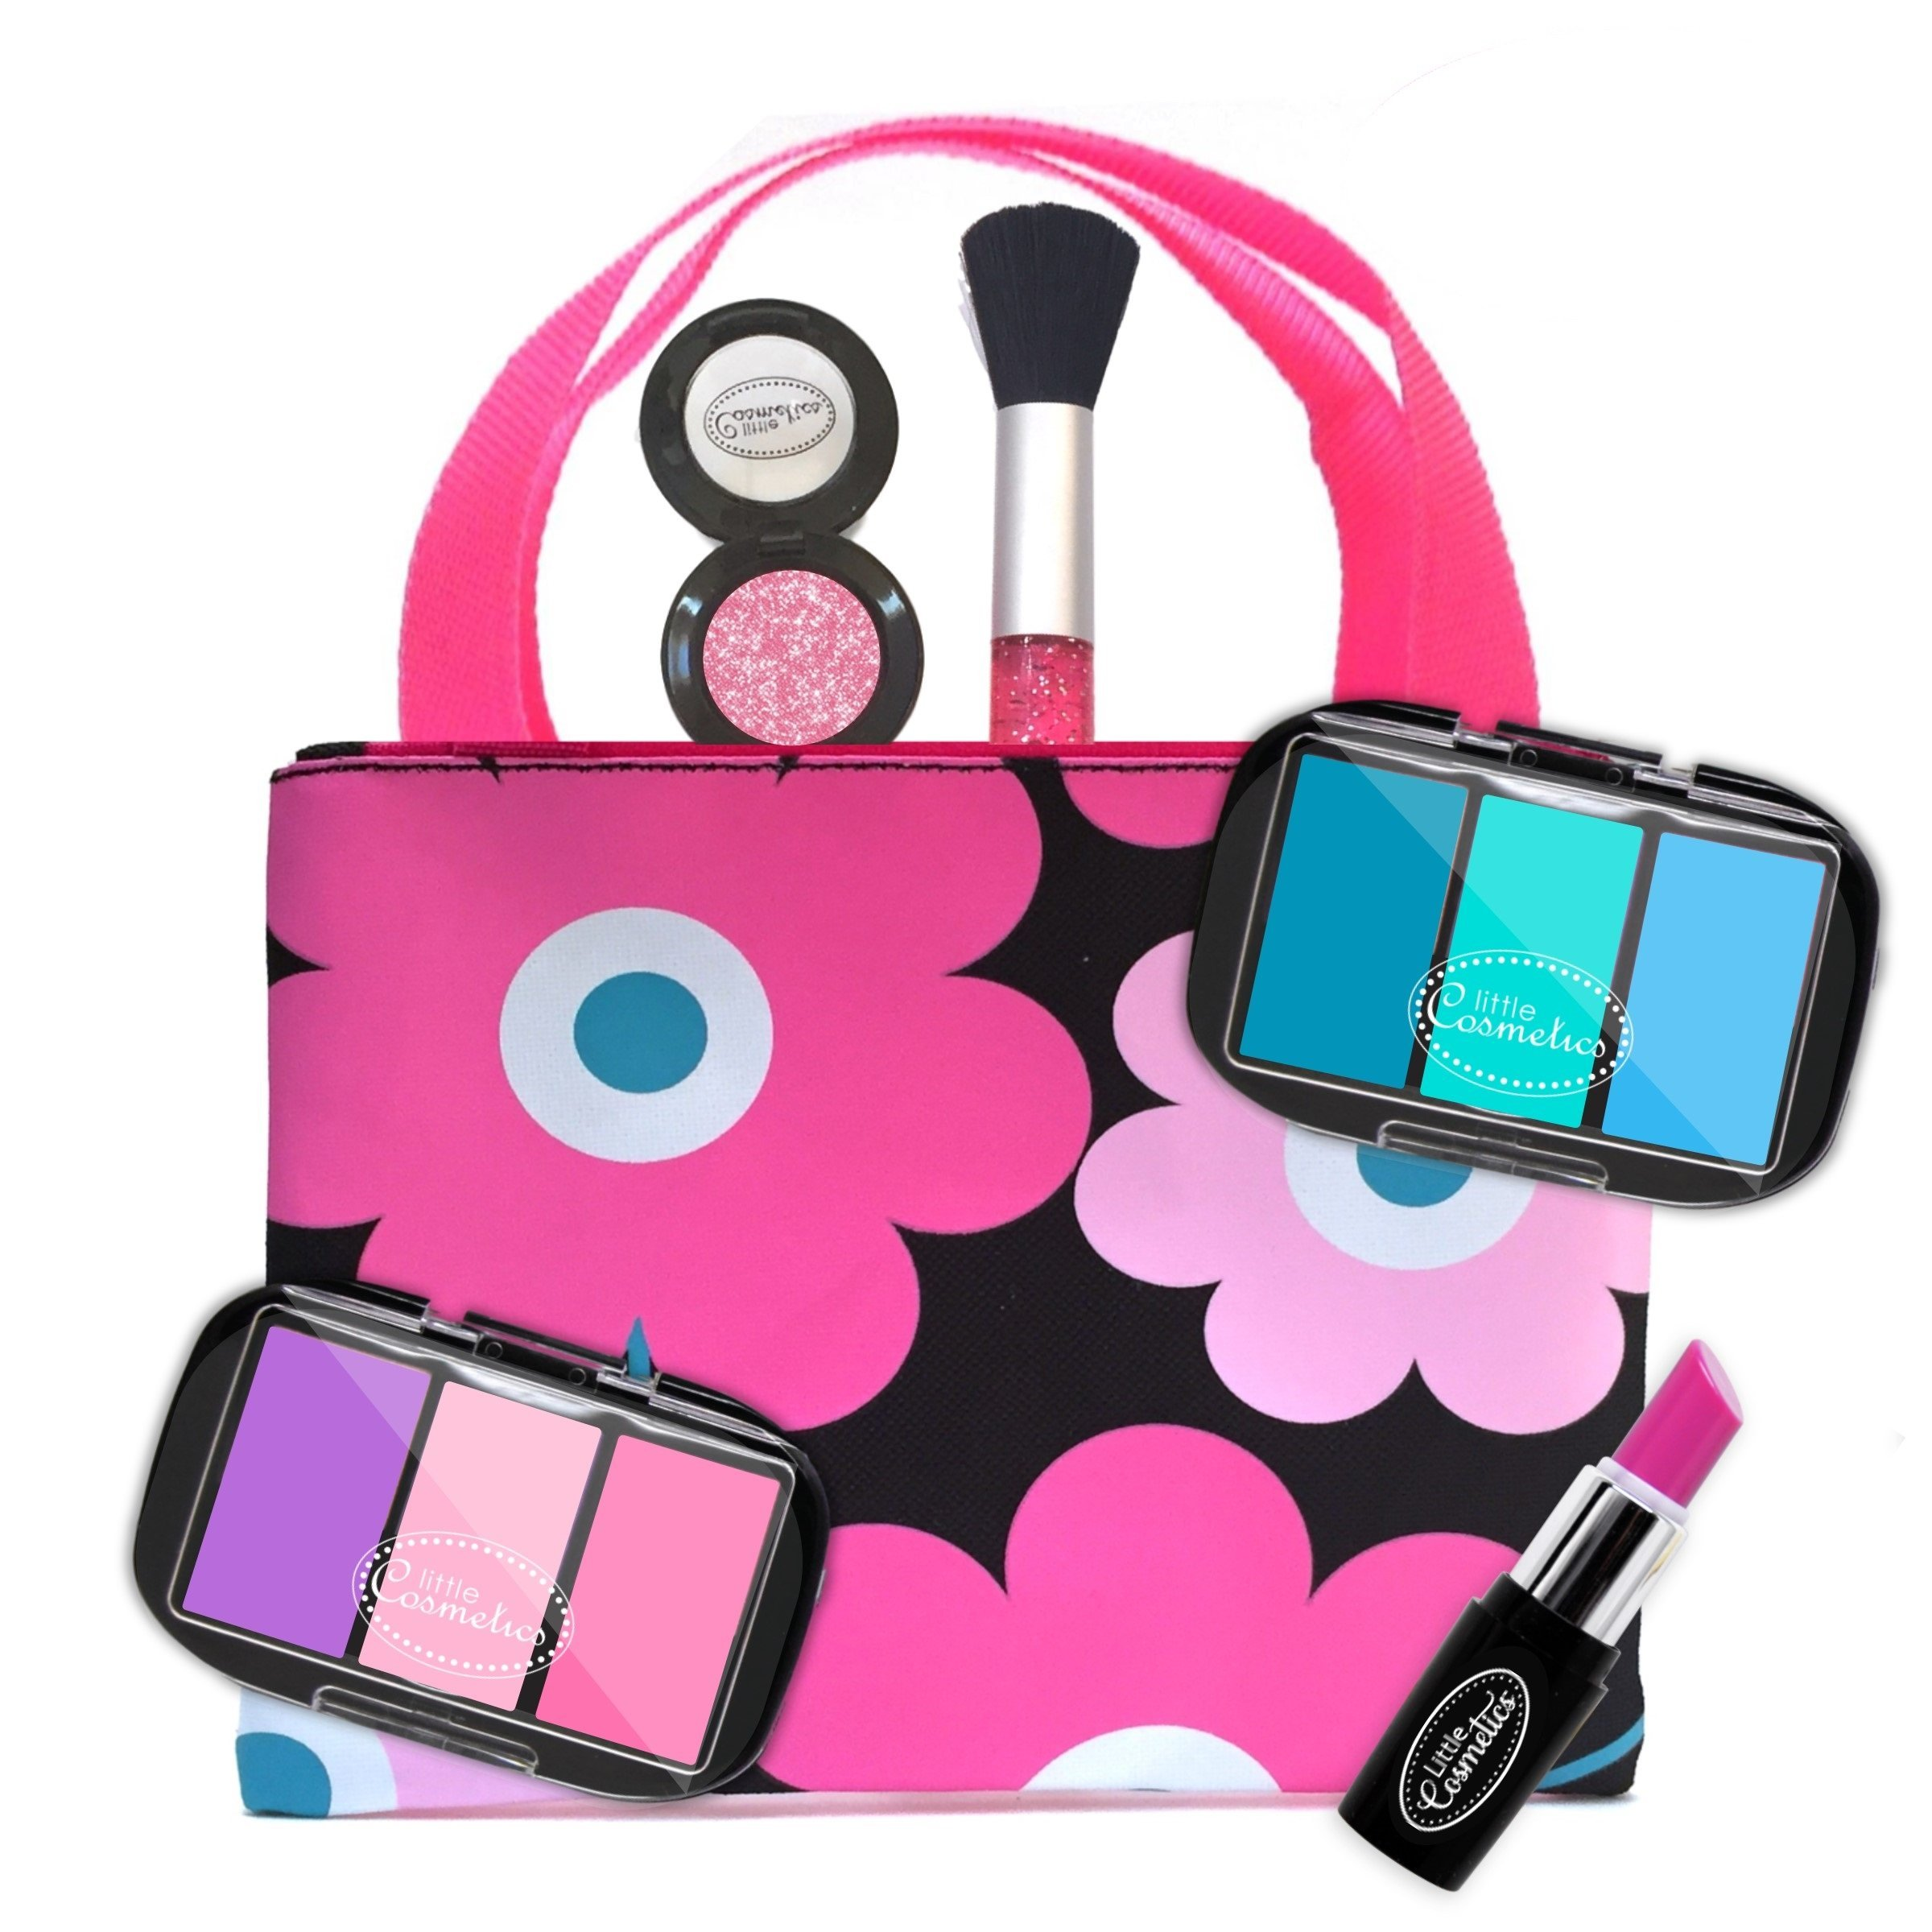 Little Cosmetics Pretend Makeup Glamour Set Product Image